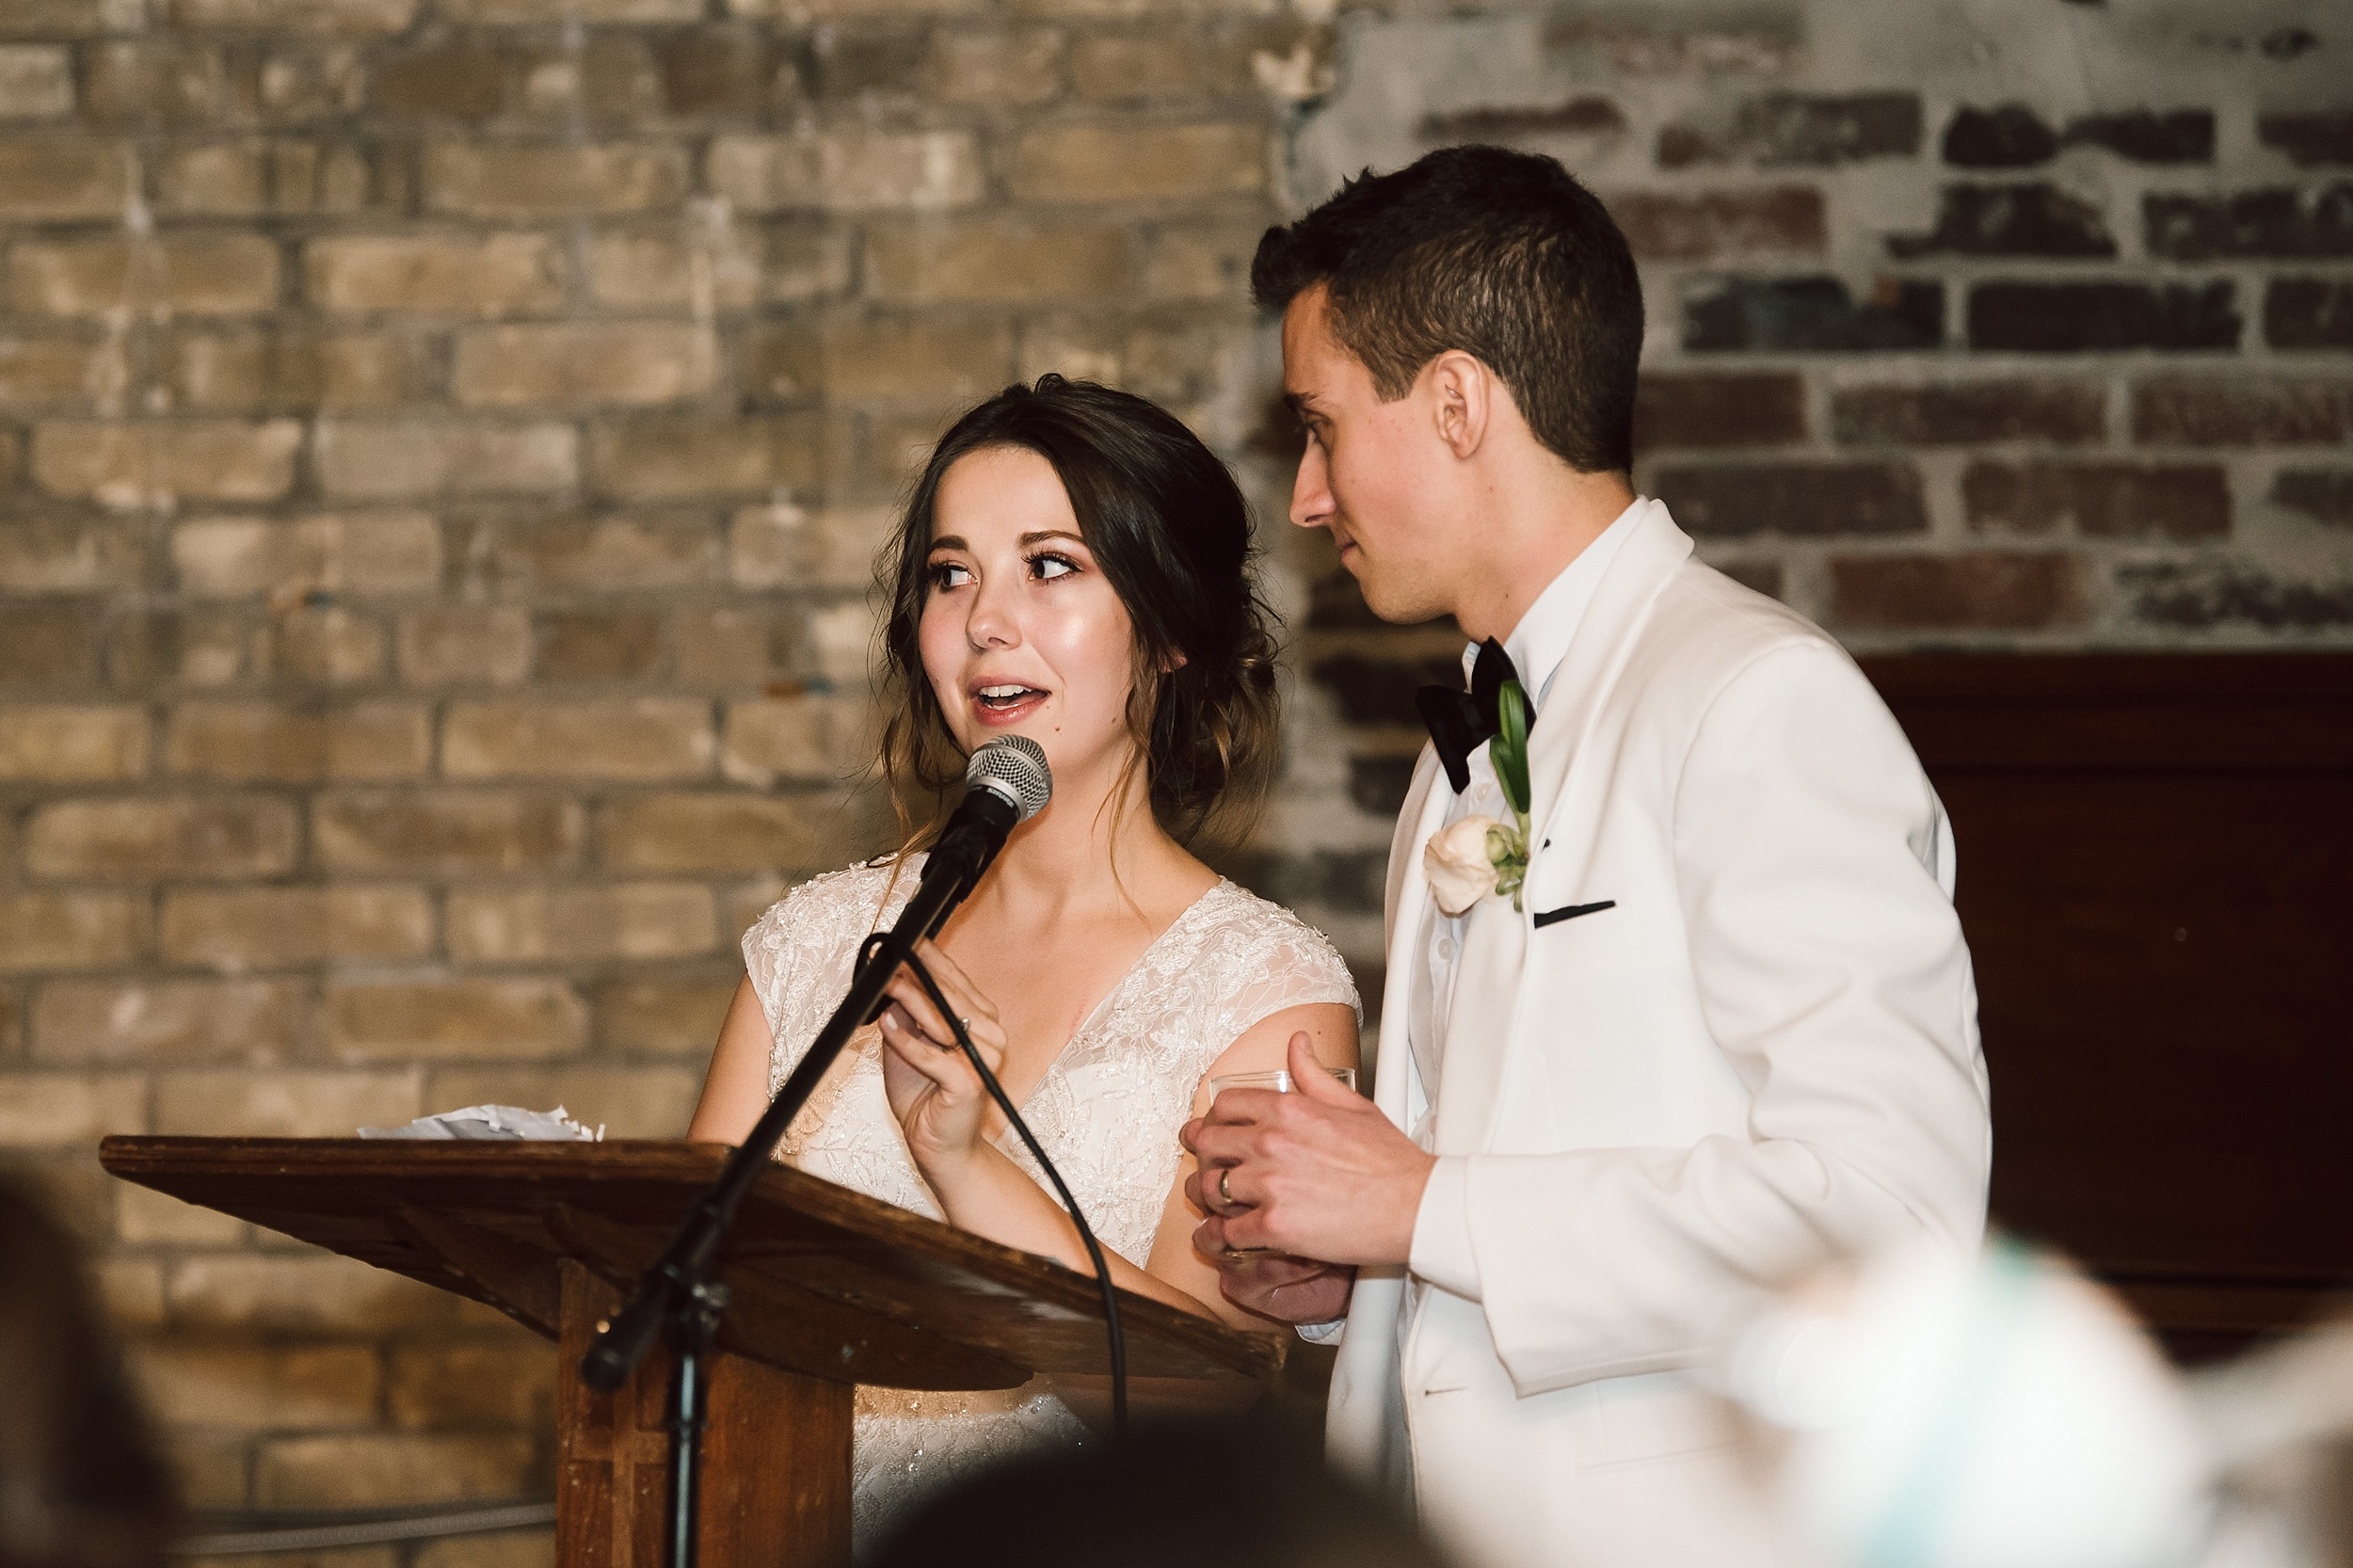 Jam_Factory_Wedding_Toronto_Winter_Wedding_Photographer_0083.jpg